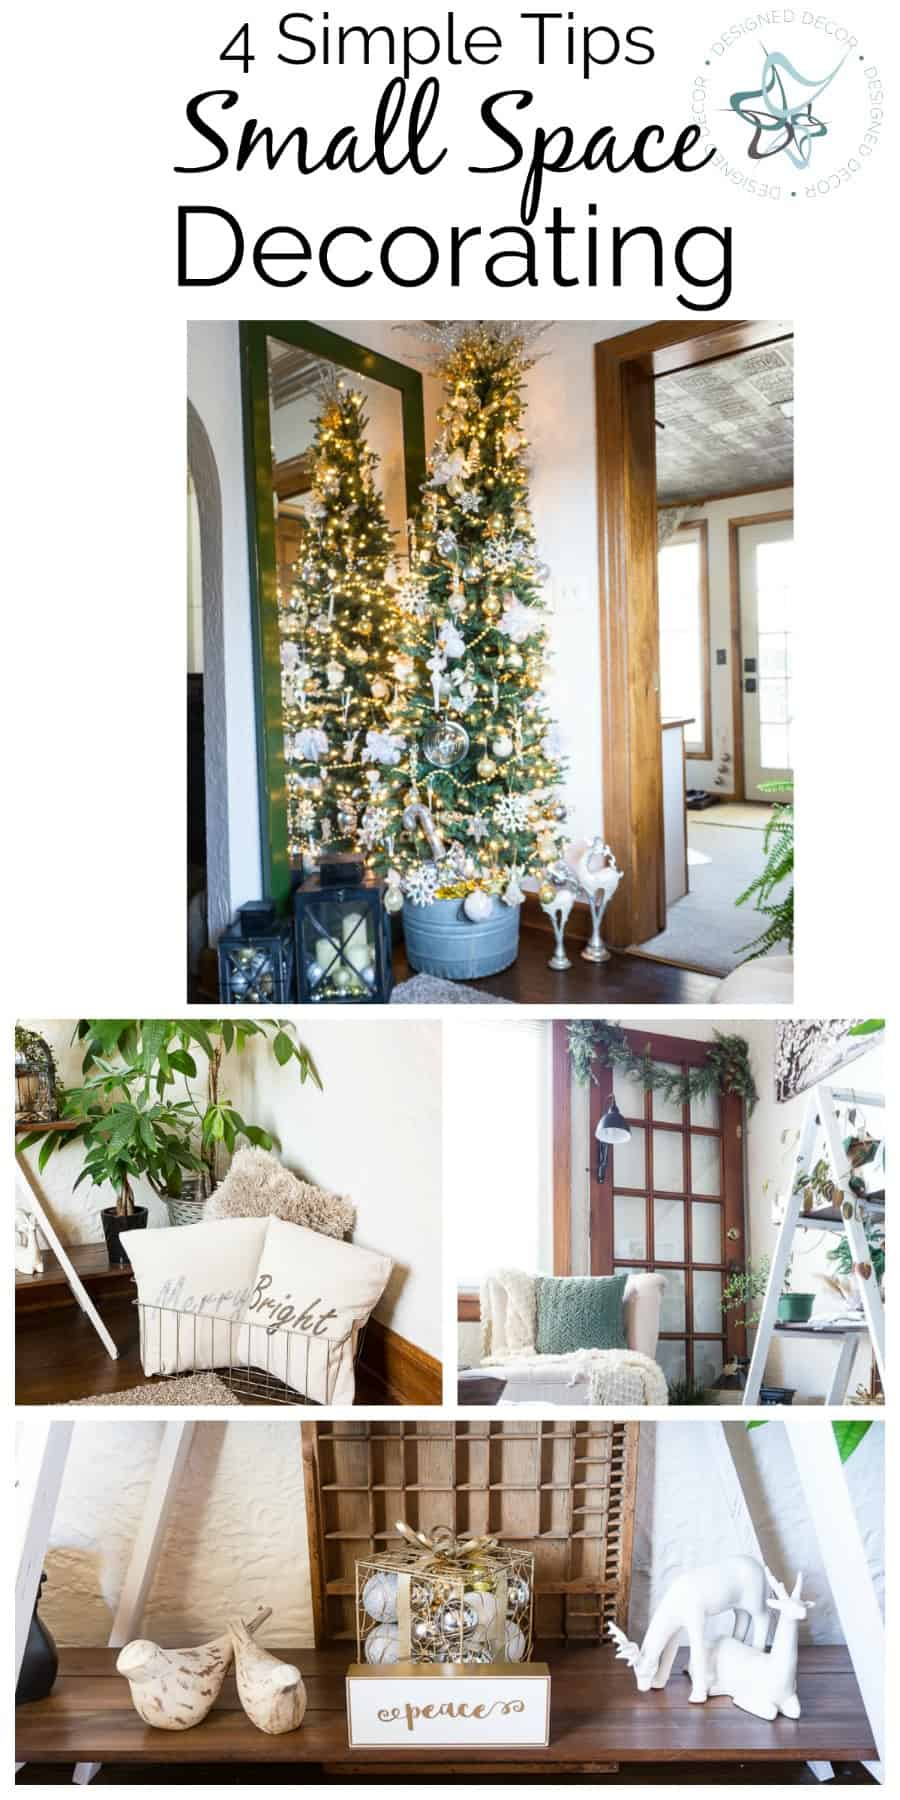 Small Space Christmas Decorating ~- Designed Decor